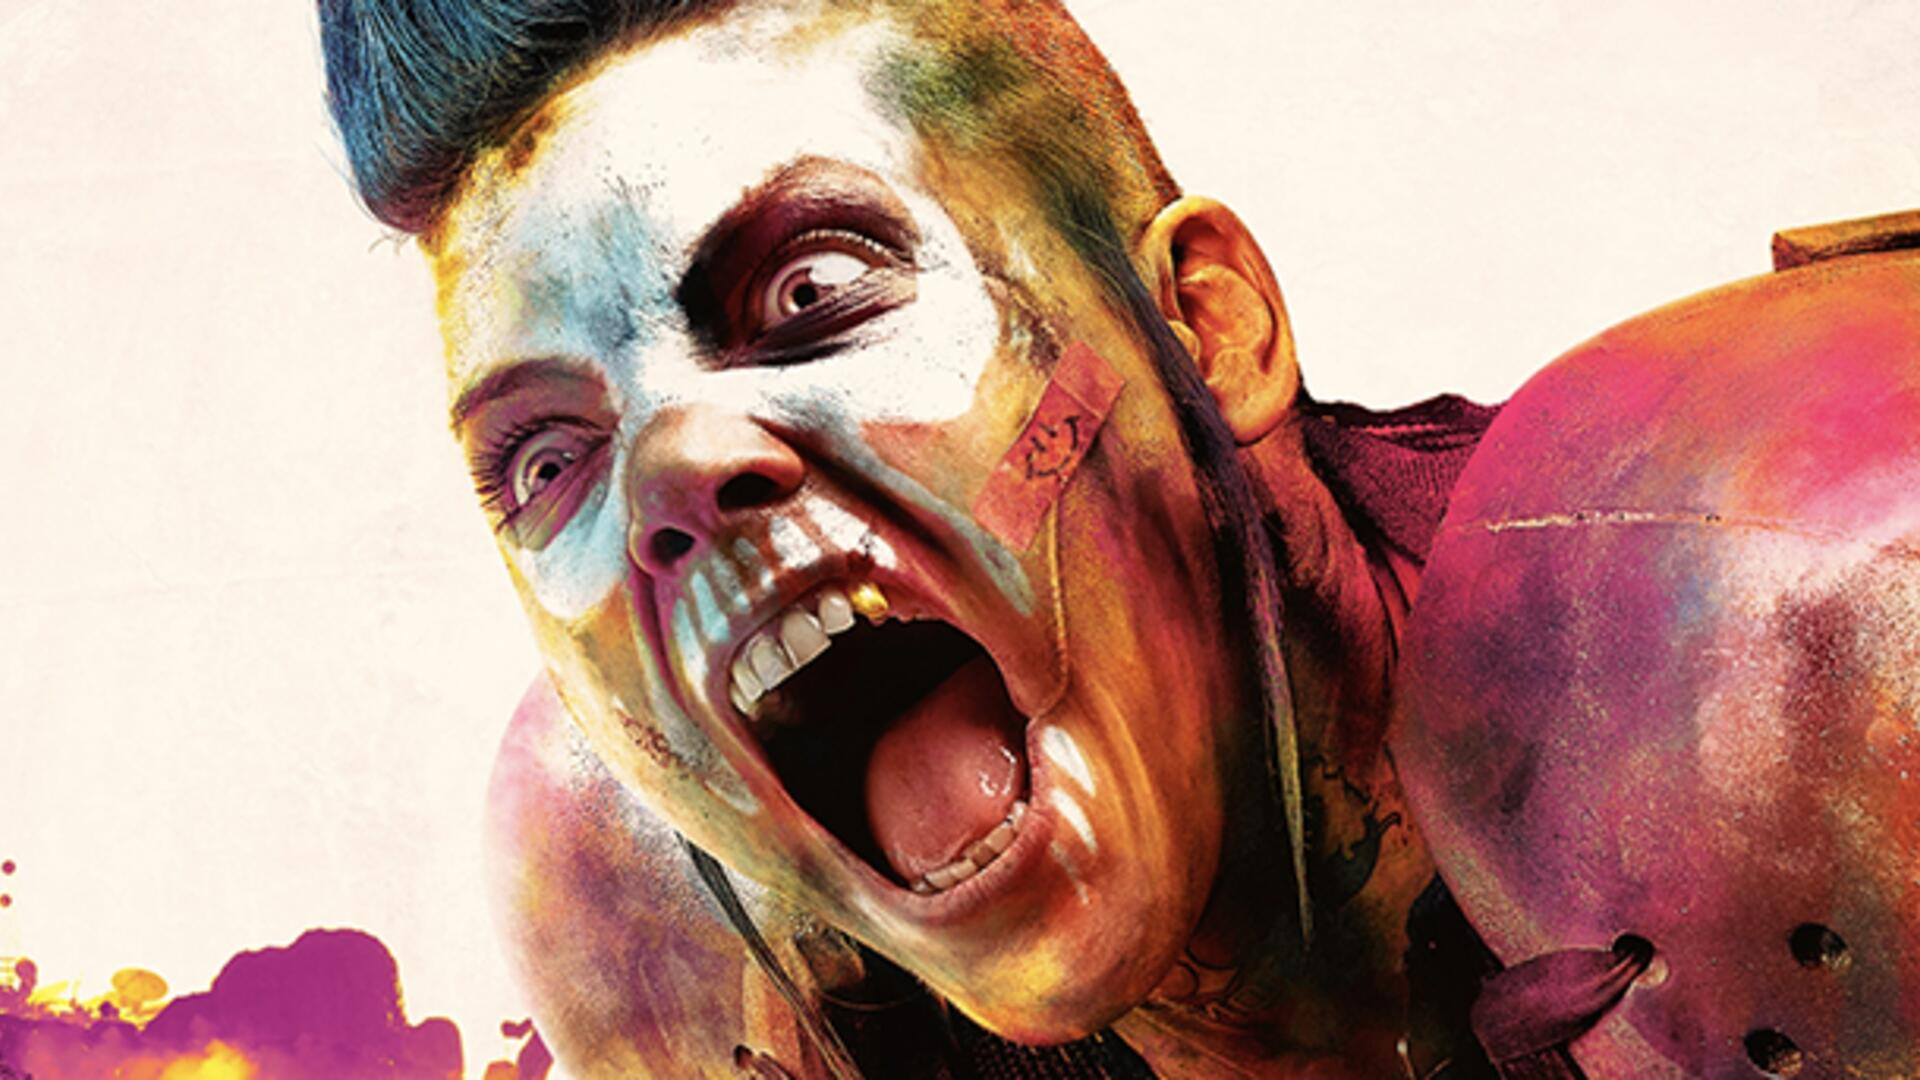 Rage 2 Gameplay Trailer Shows Off Gorgeous Open-World Visuals